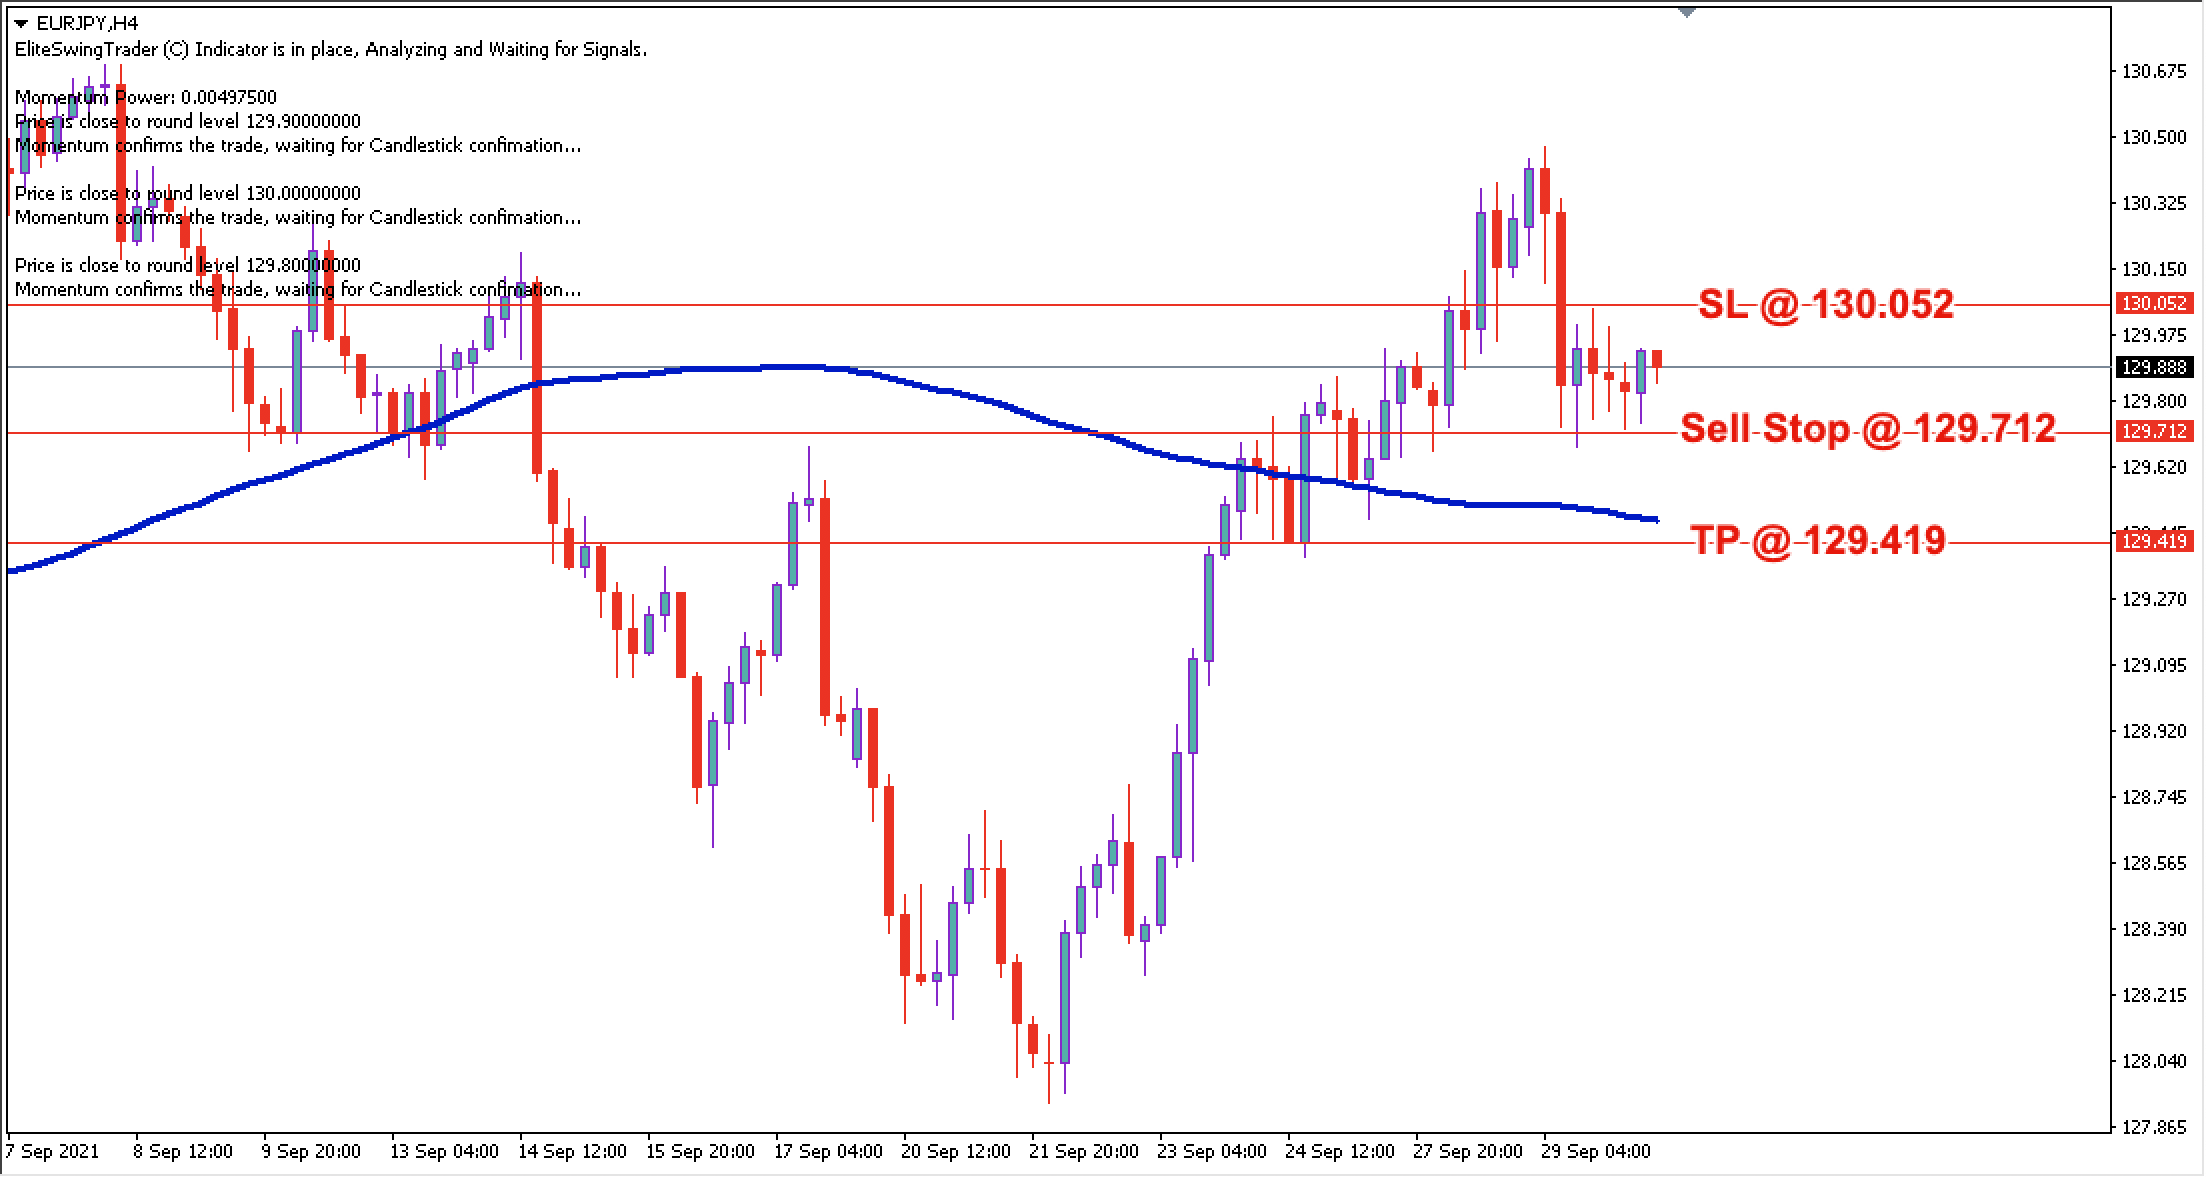 EUR/JPY Daily Price Forecast – 30th Sept 2021